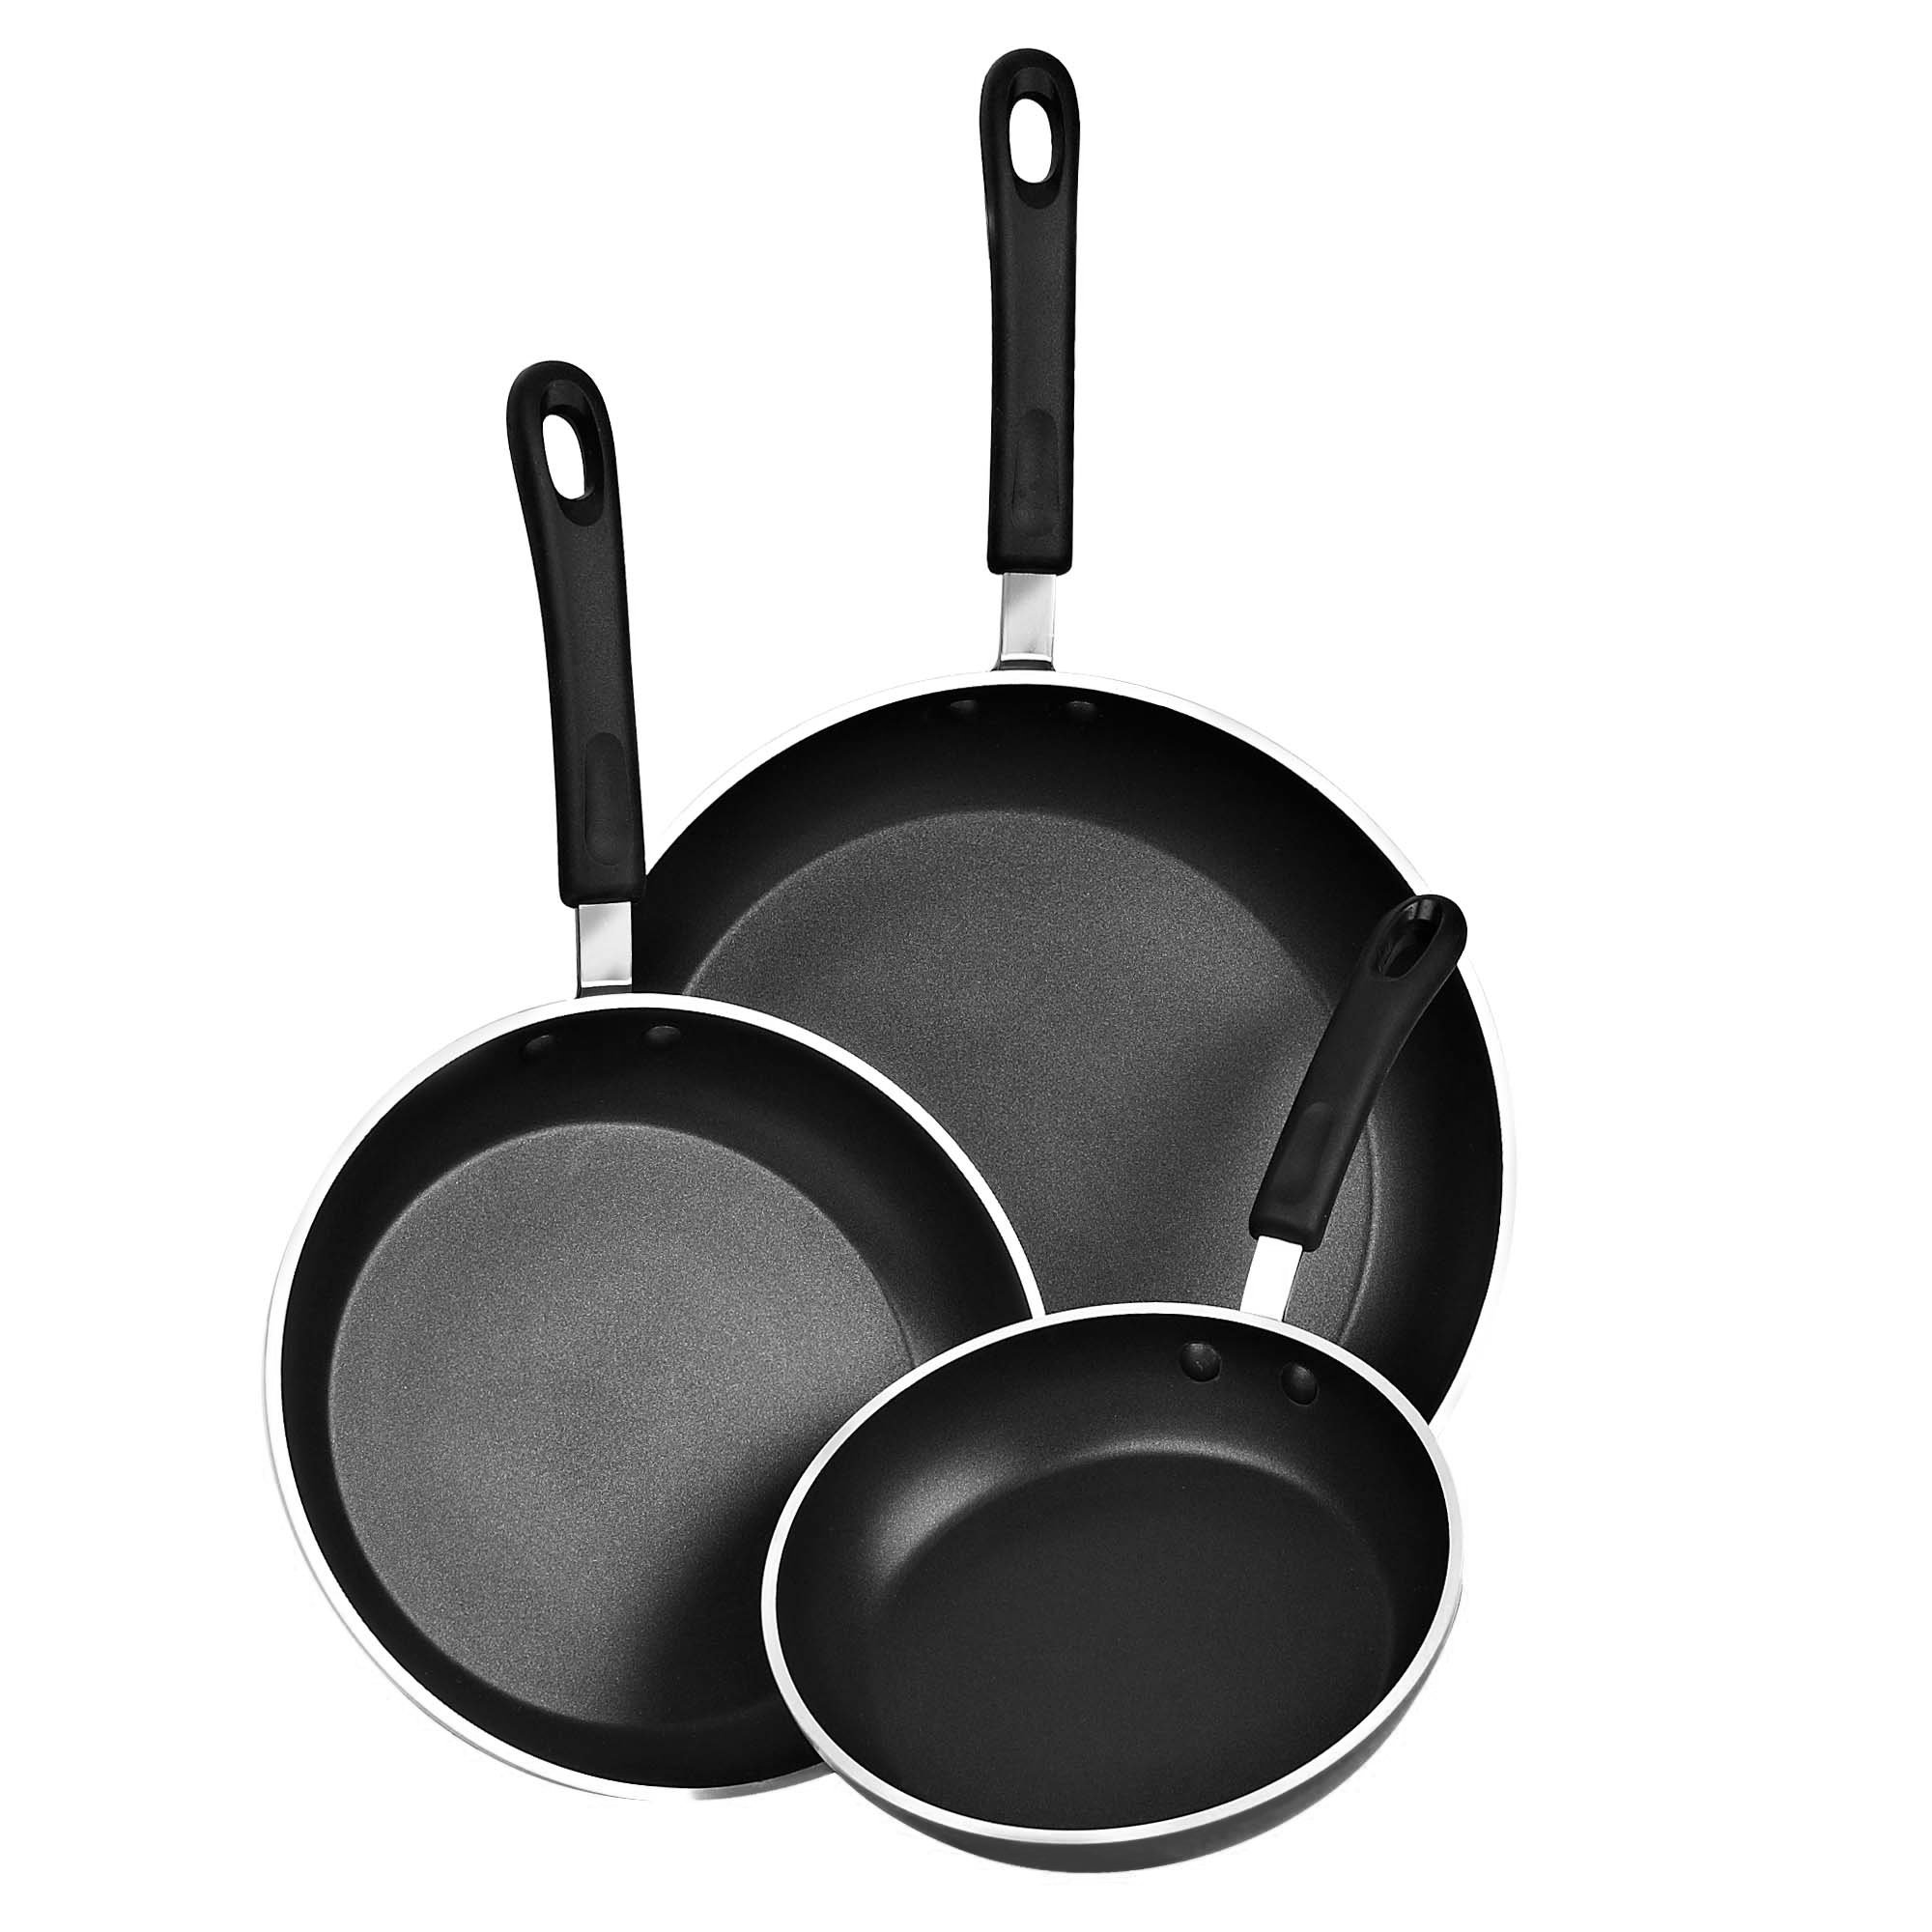 Cook N Home 3 Piece Frying Pan/Saute Pan Set with Non-Stick Coating Induction Compatible Bottom, 8''/10''/12'', Black by Cook N Home (Image #2)